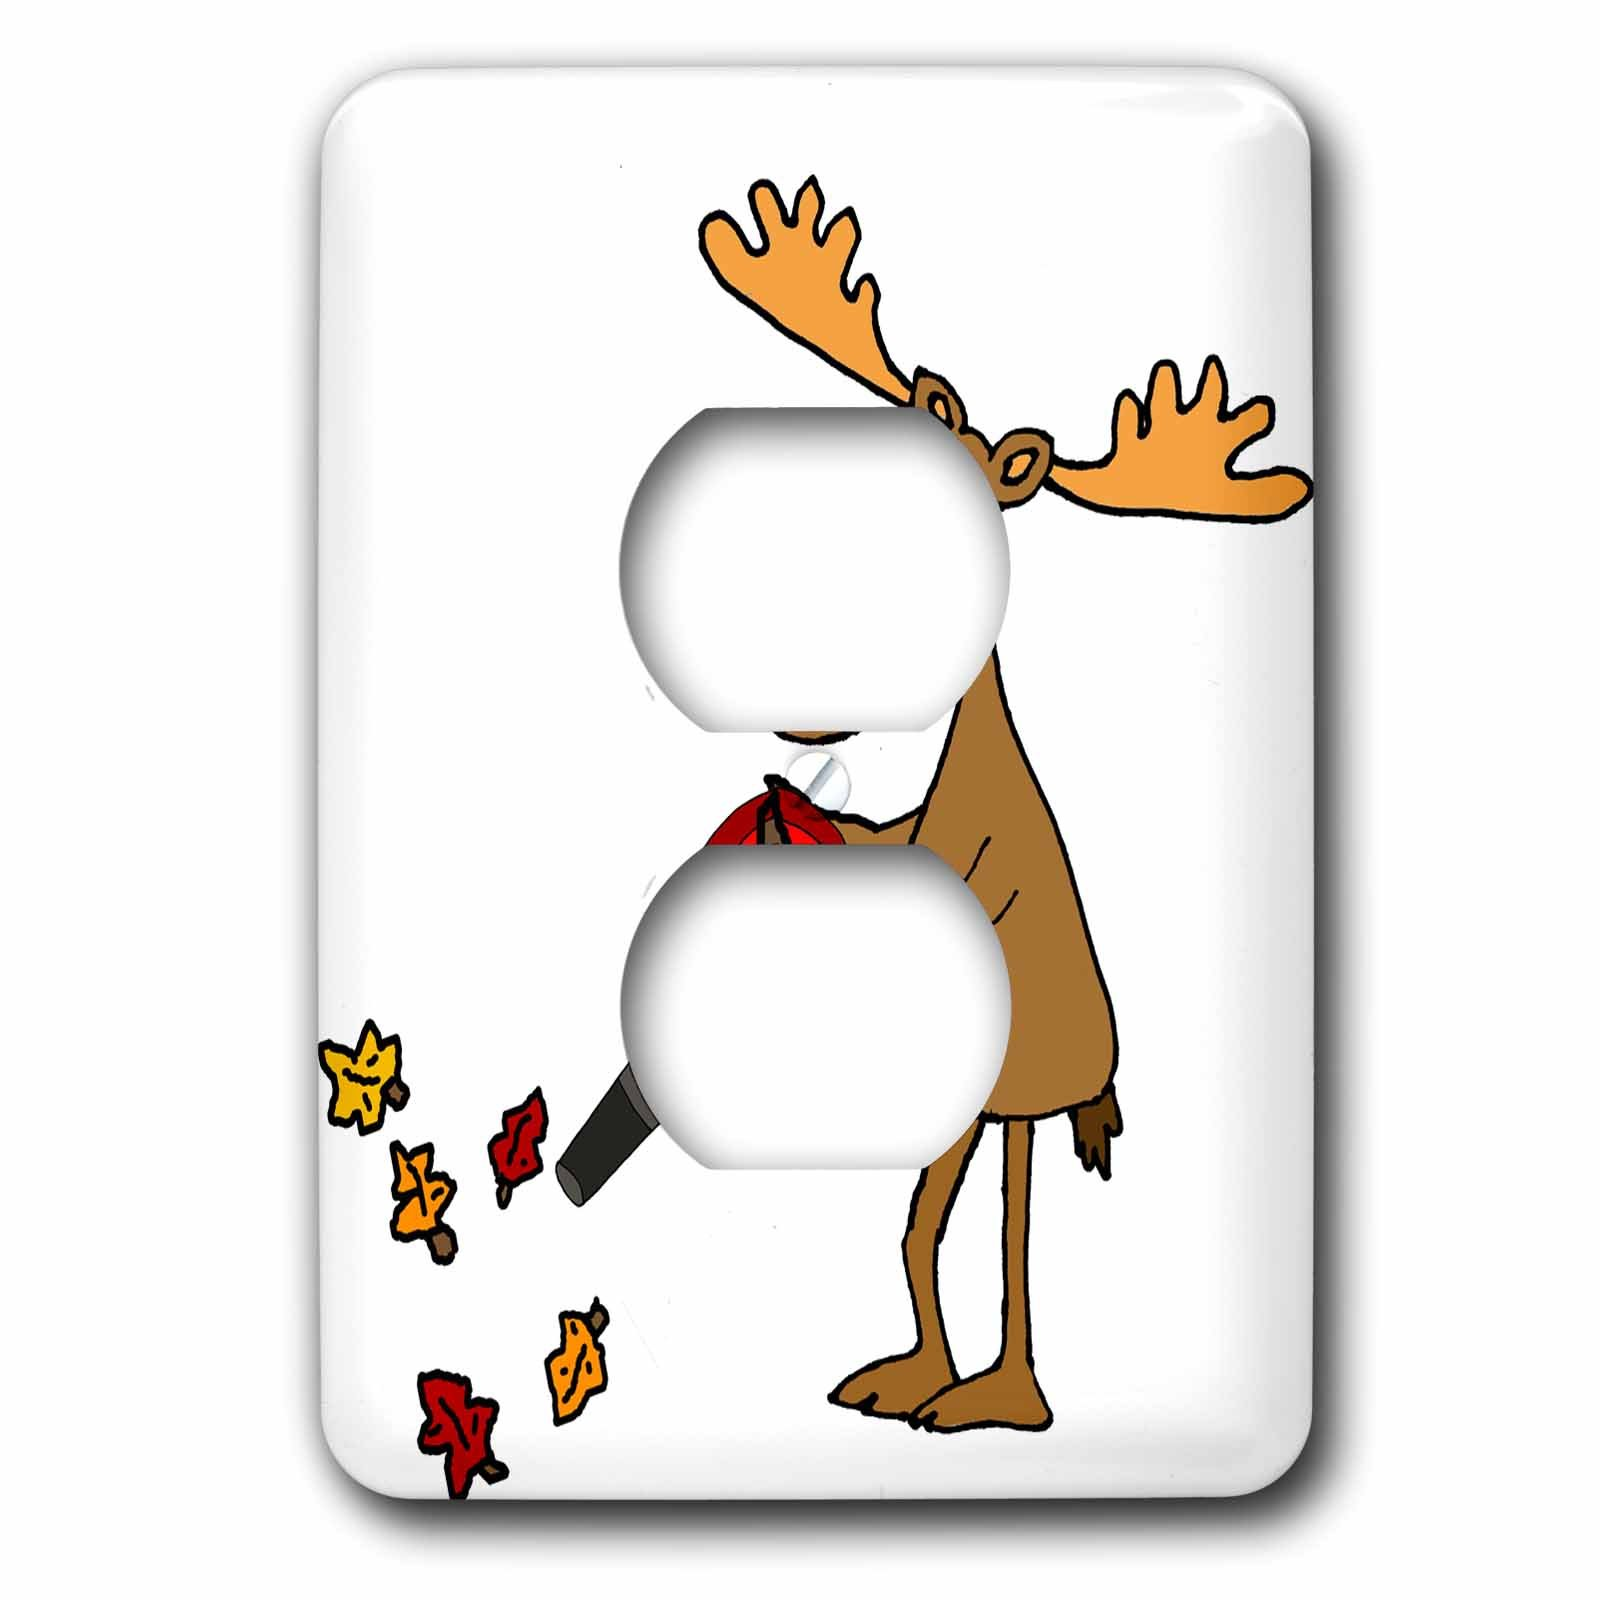 3dRose All Smiles Art Animals - Funny Cute Moose using Leaf Blower Yard Work Cartoon - Light Switch Covers - 2 plug outlet cover (lsp_263877_6)